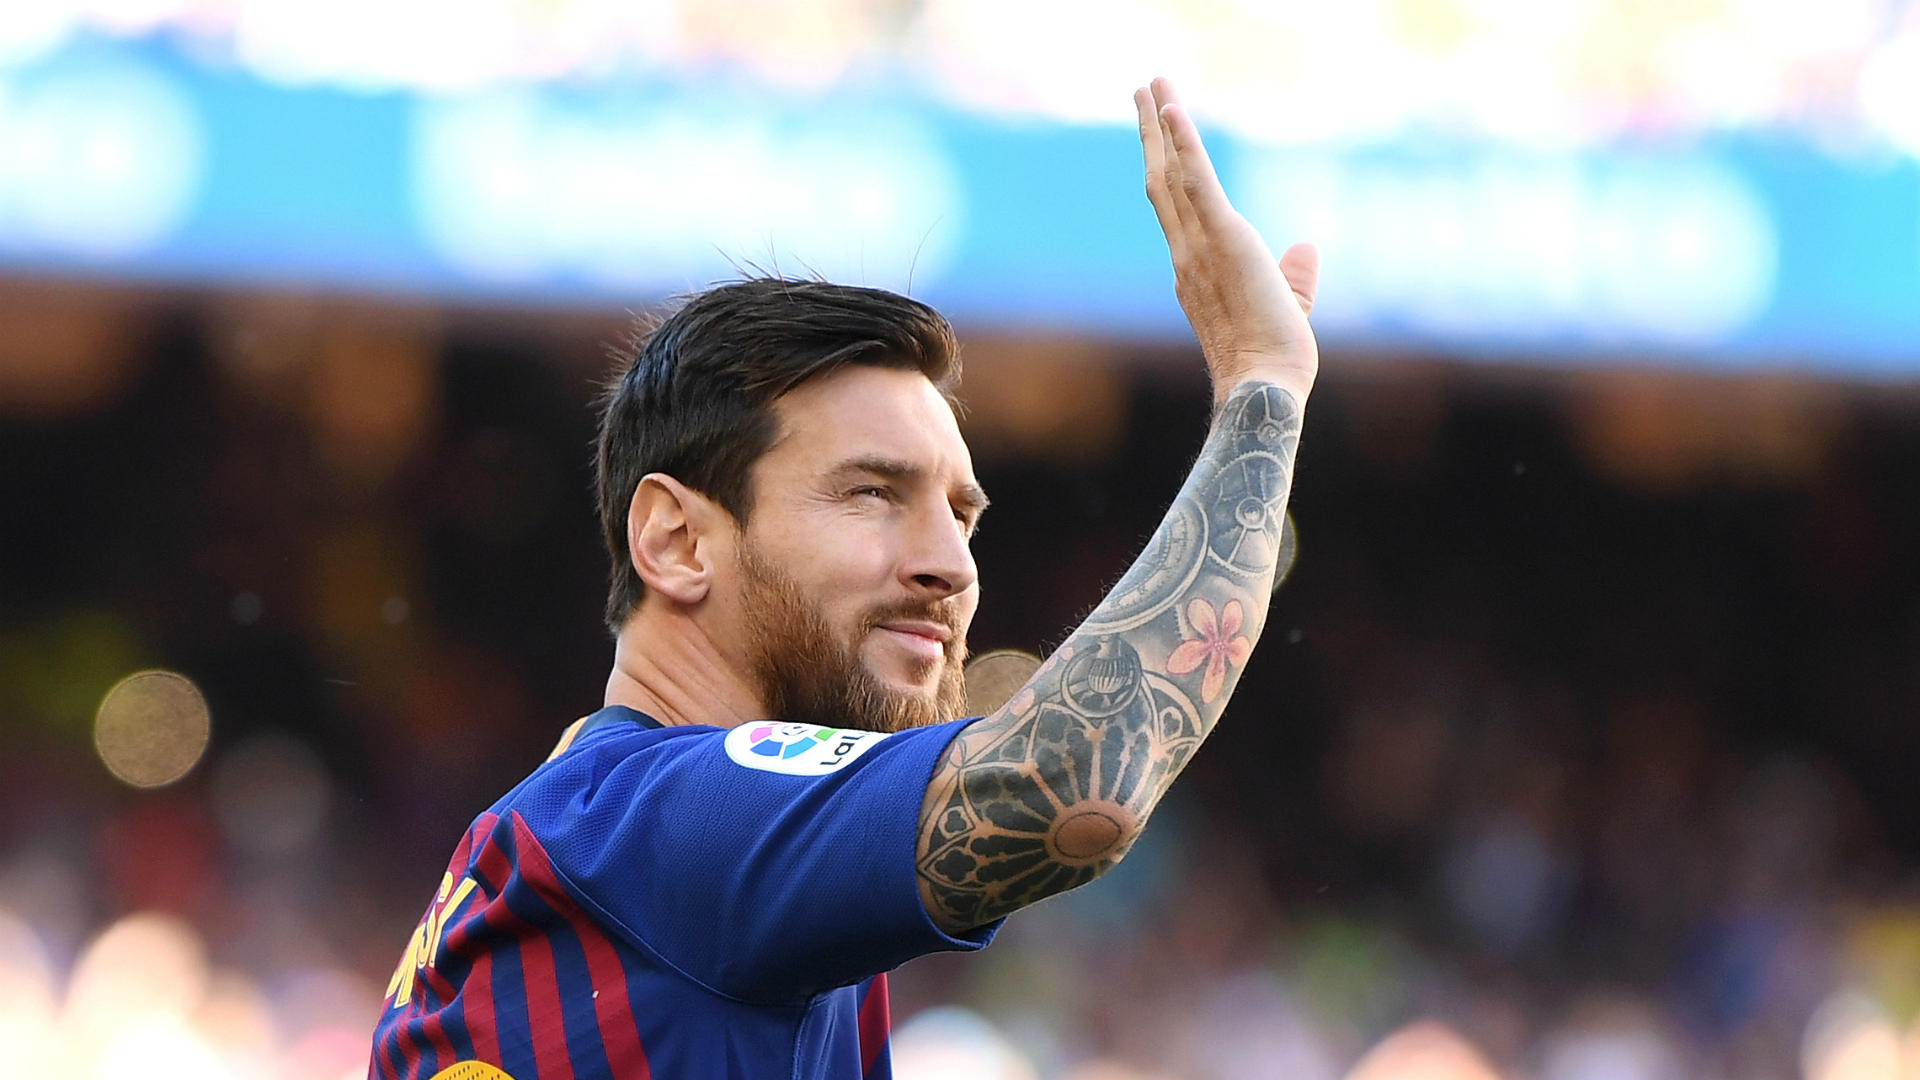 Champions League the dream for Barca, says Messi